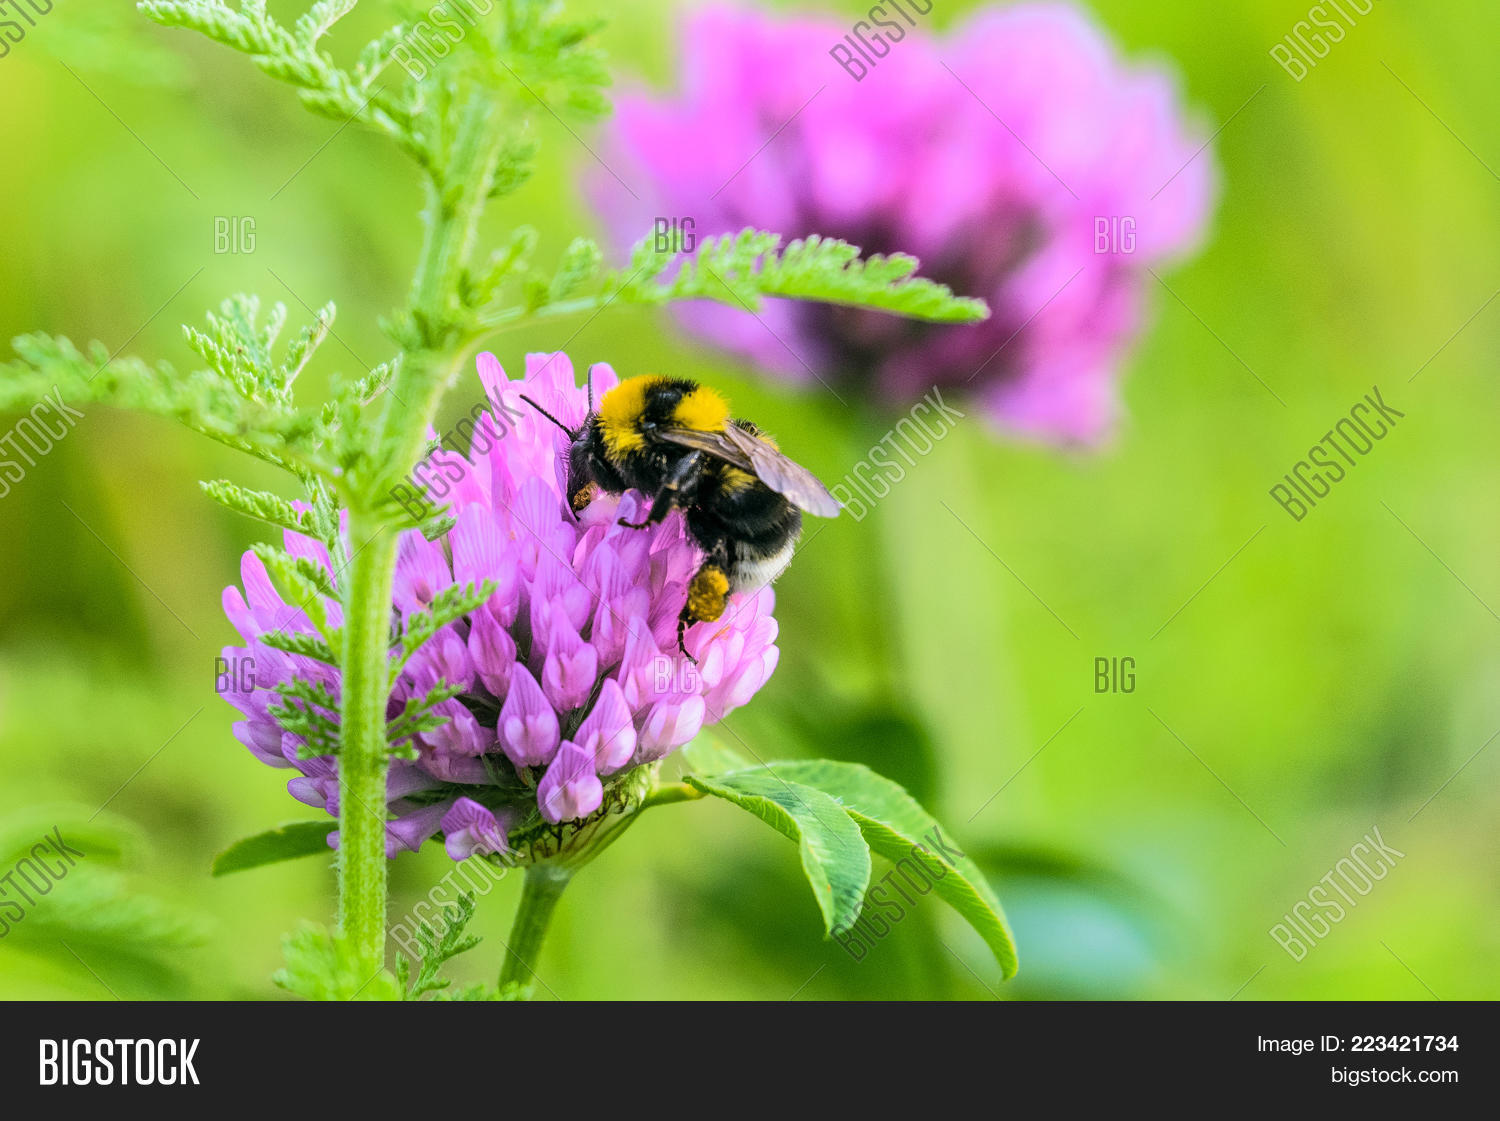 Bumblebee Basket Image Photo Free Trial Bigstock